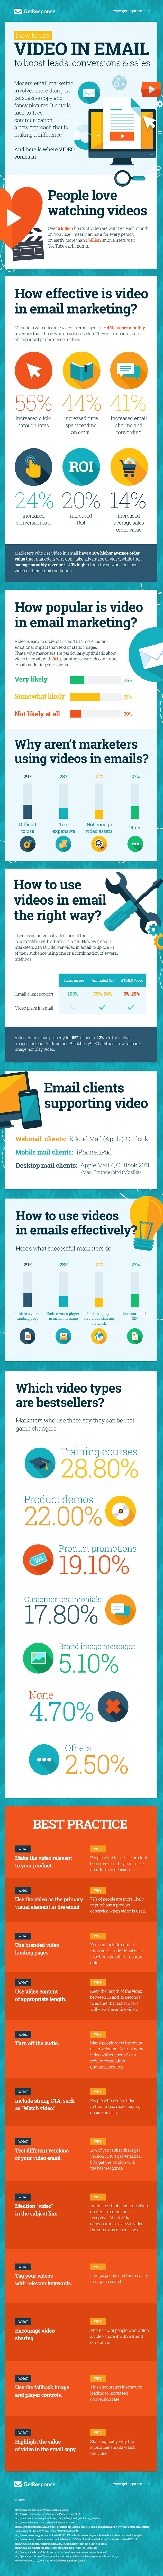 Video in Email? Here is What You Need to Know